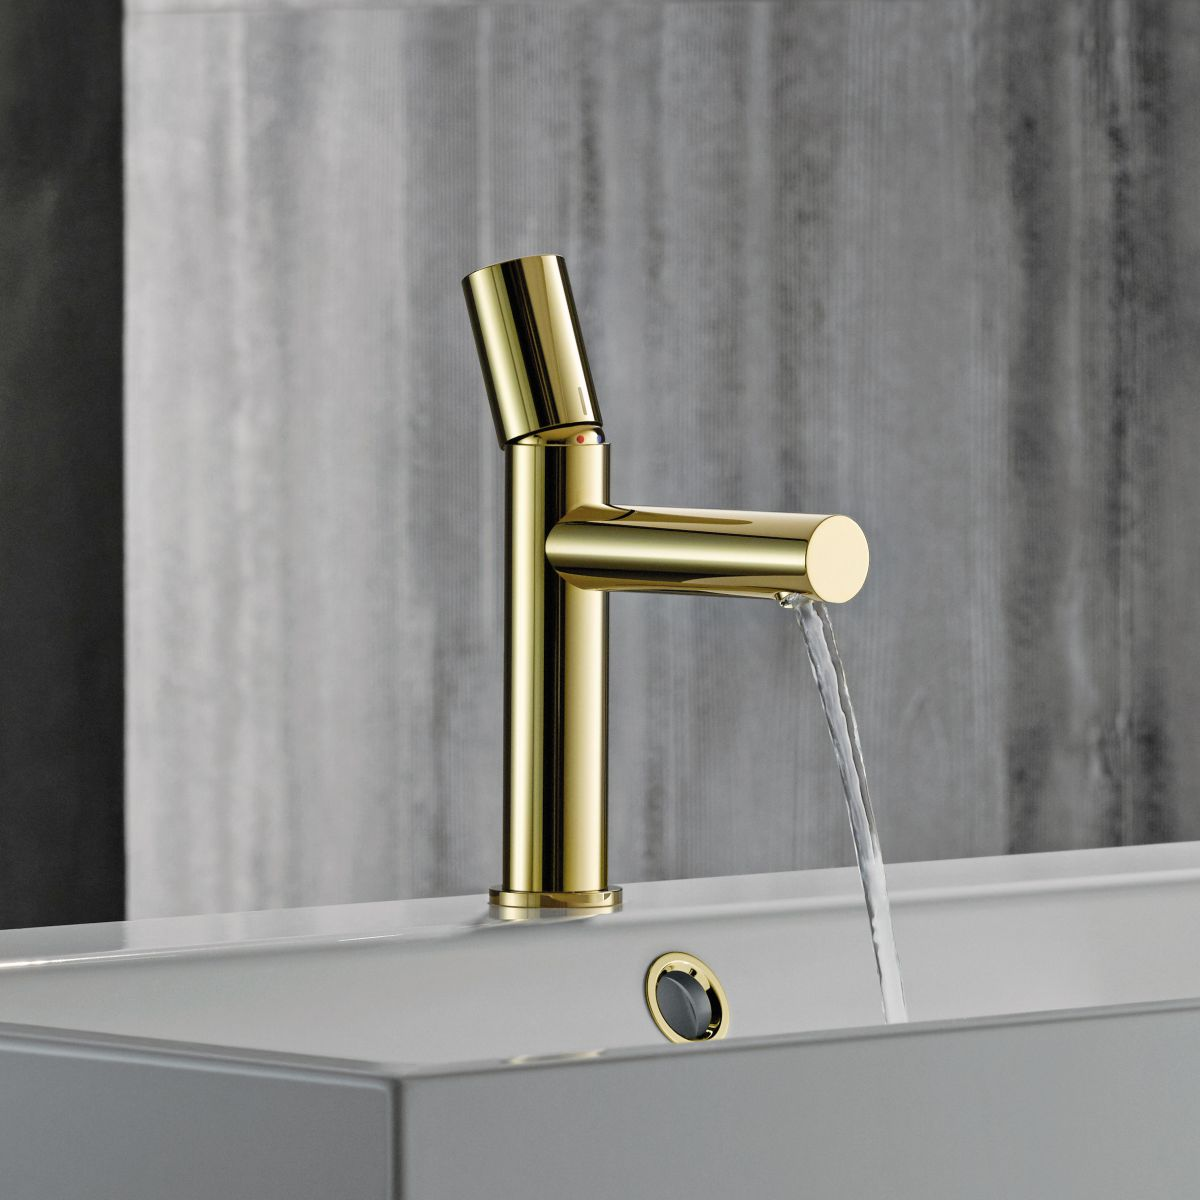 axor uno 80 zero handle basin mixer tap uk bathrooms. Black Bedroom Furniture Sets. Home Design Ideas